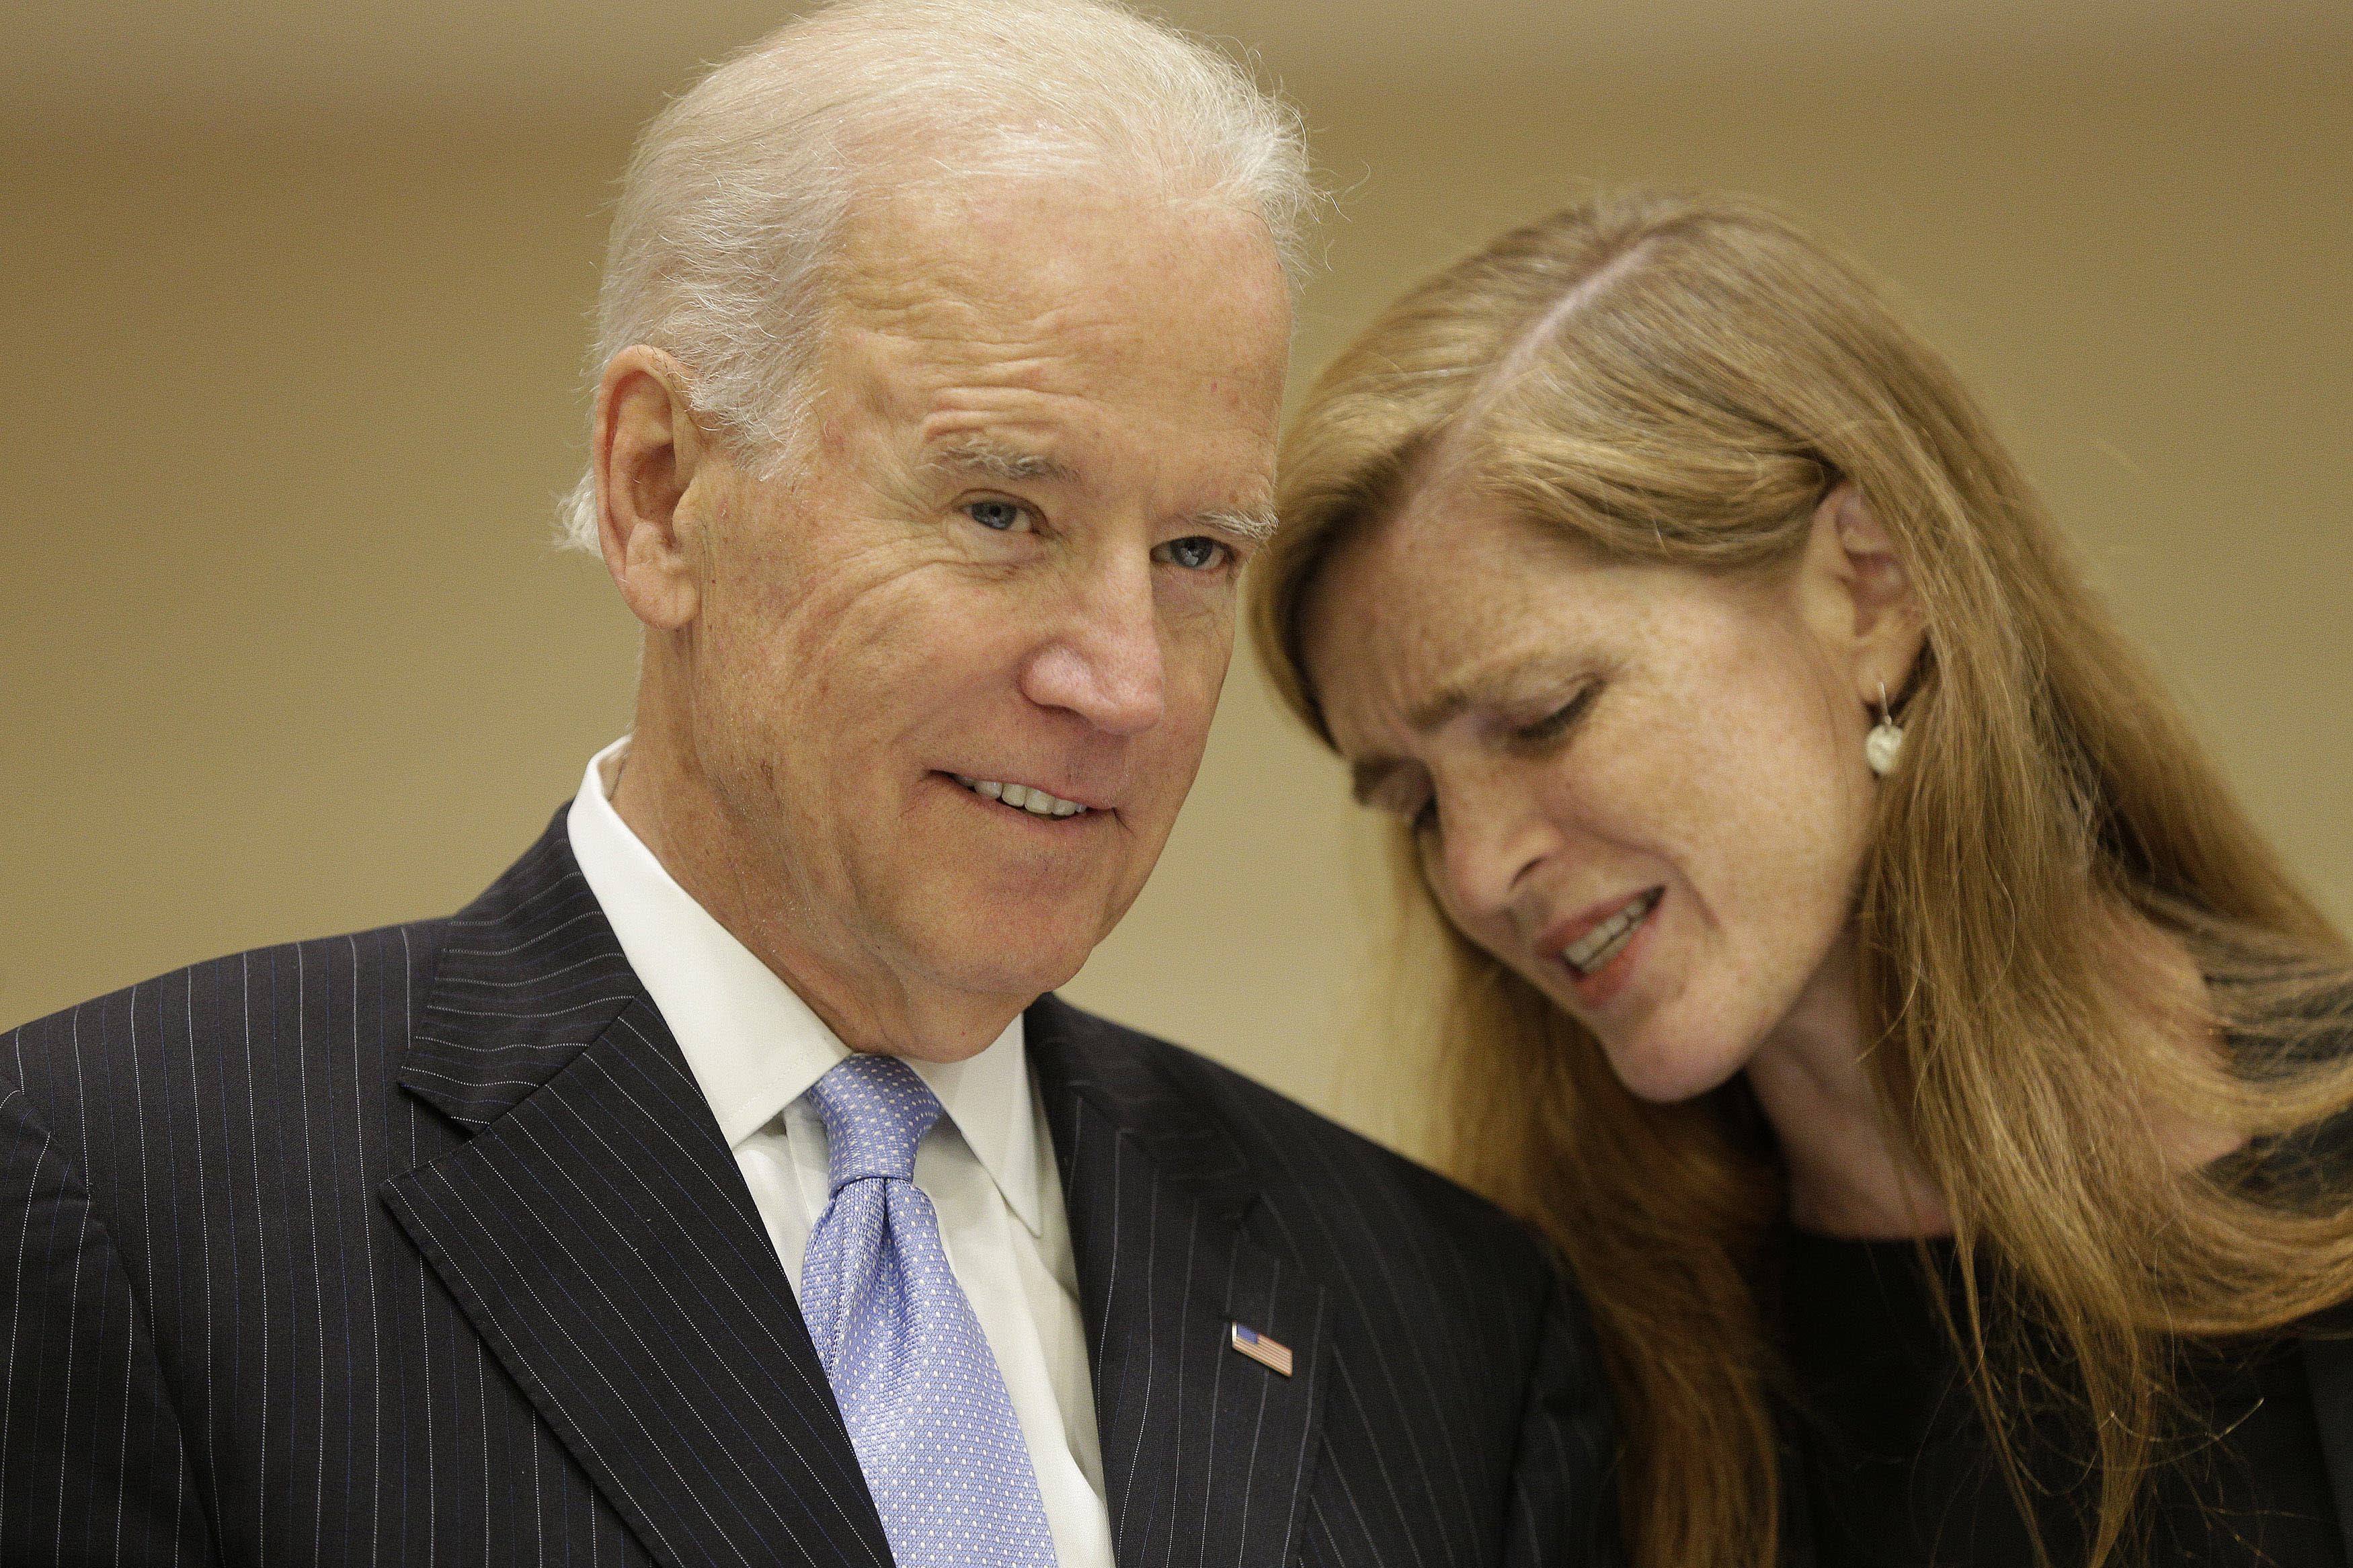 Former UN ambassador Samantha Power on why she has 'nothing but respect' for Joe Biden